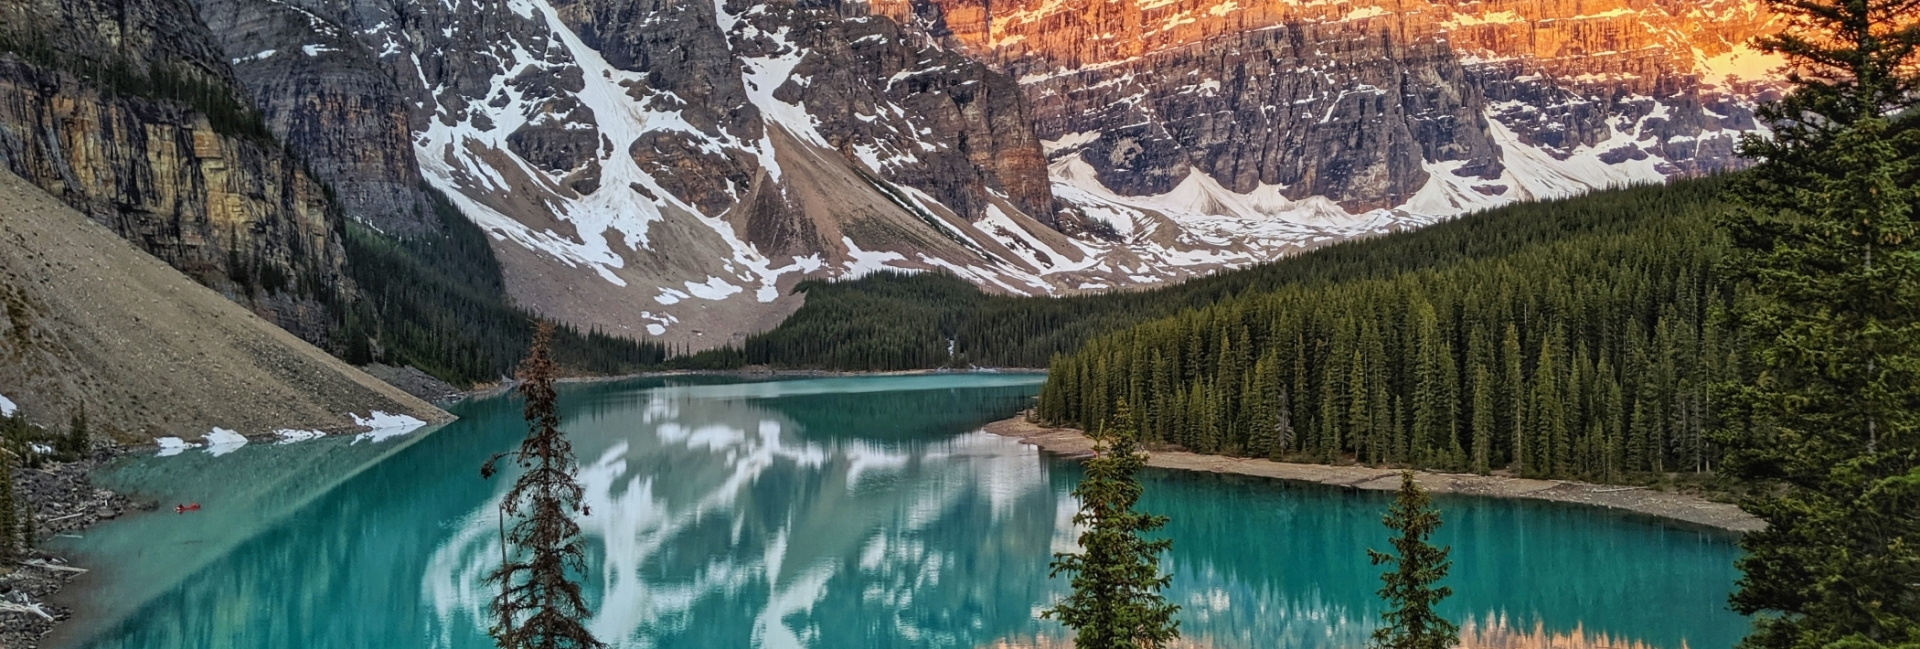 jacky huang 6rC8fmNW3pk unsplash 1920x649 - Hey Ho Let's Go To Canada!